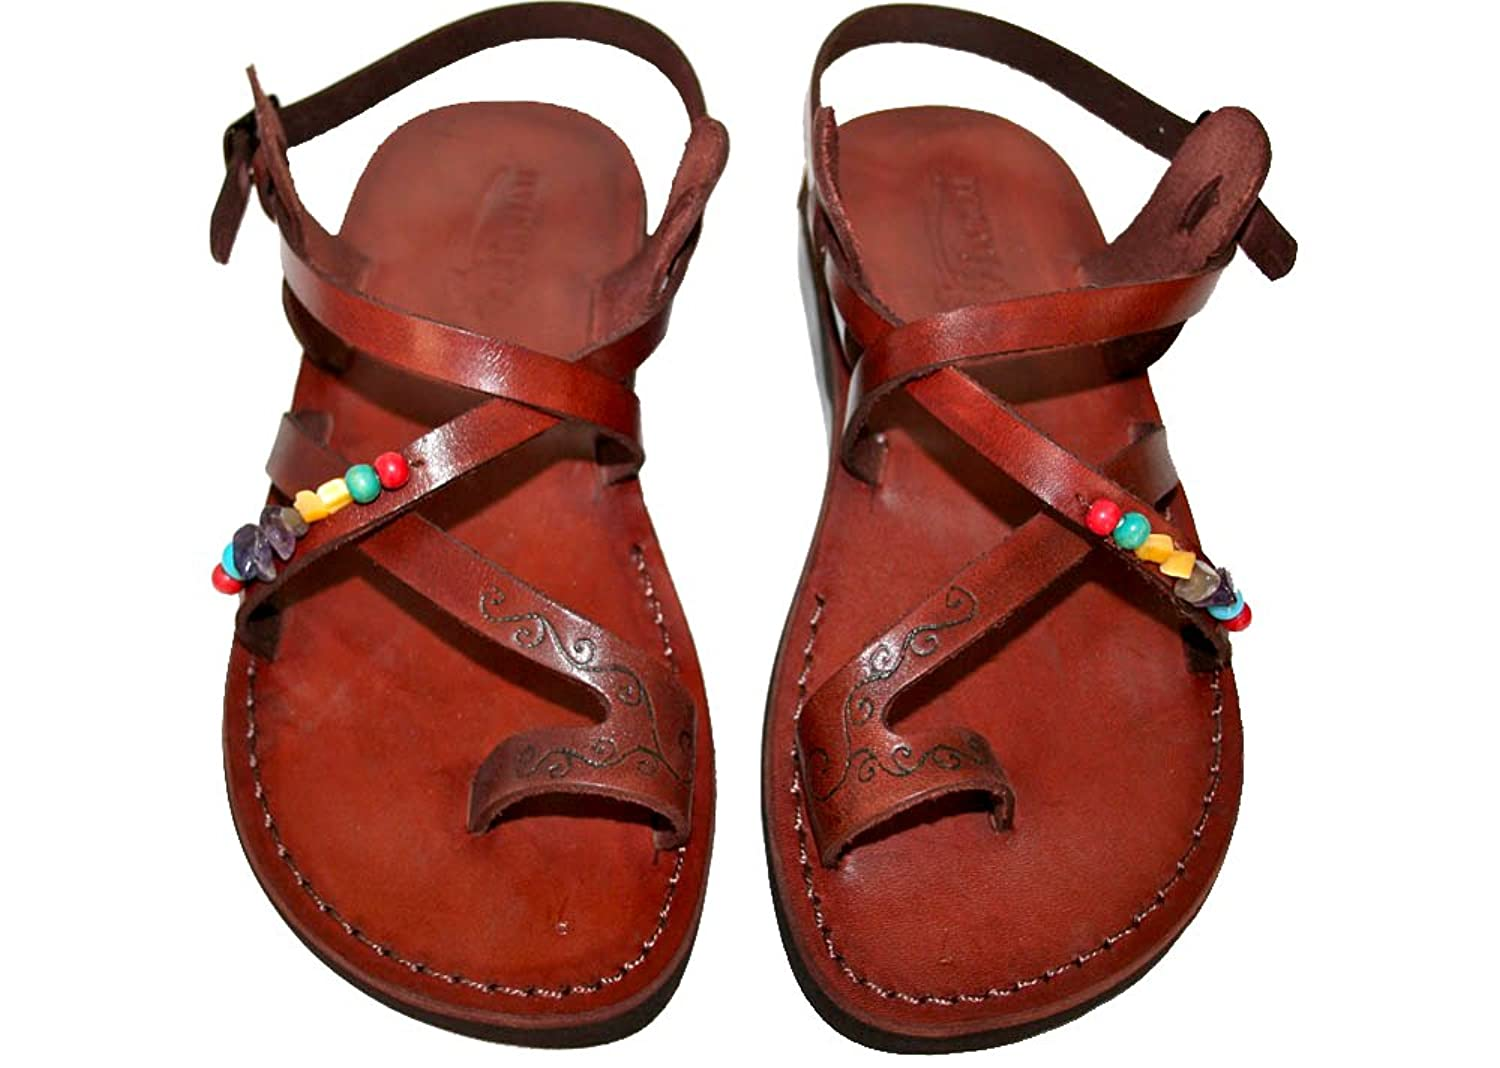 404c59409 outlet Brown Decor Roxy Unisex Leather Sandals   Genuine Handmade Leather  Holy Land Biblical Jesus Sandals